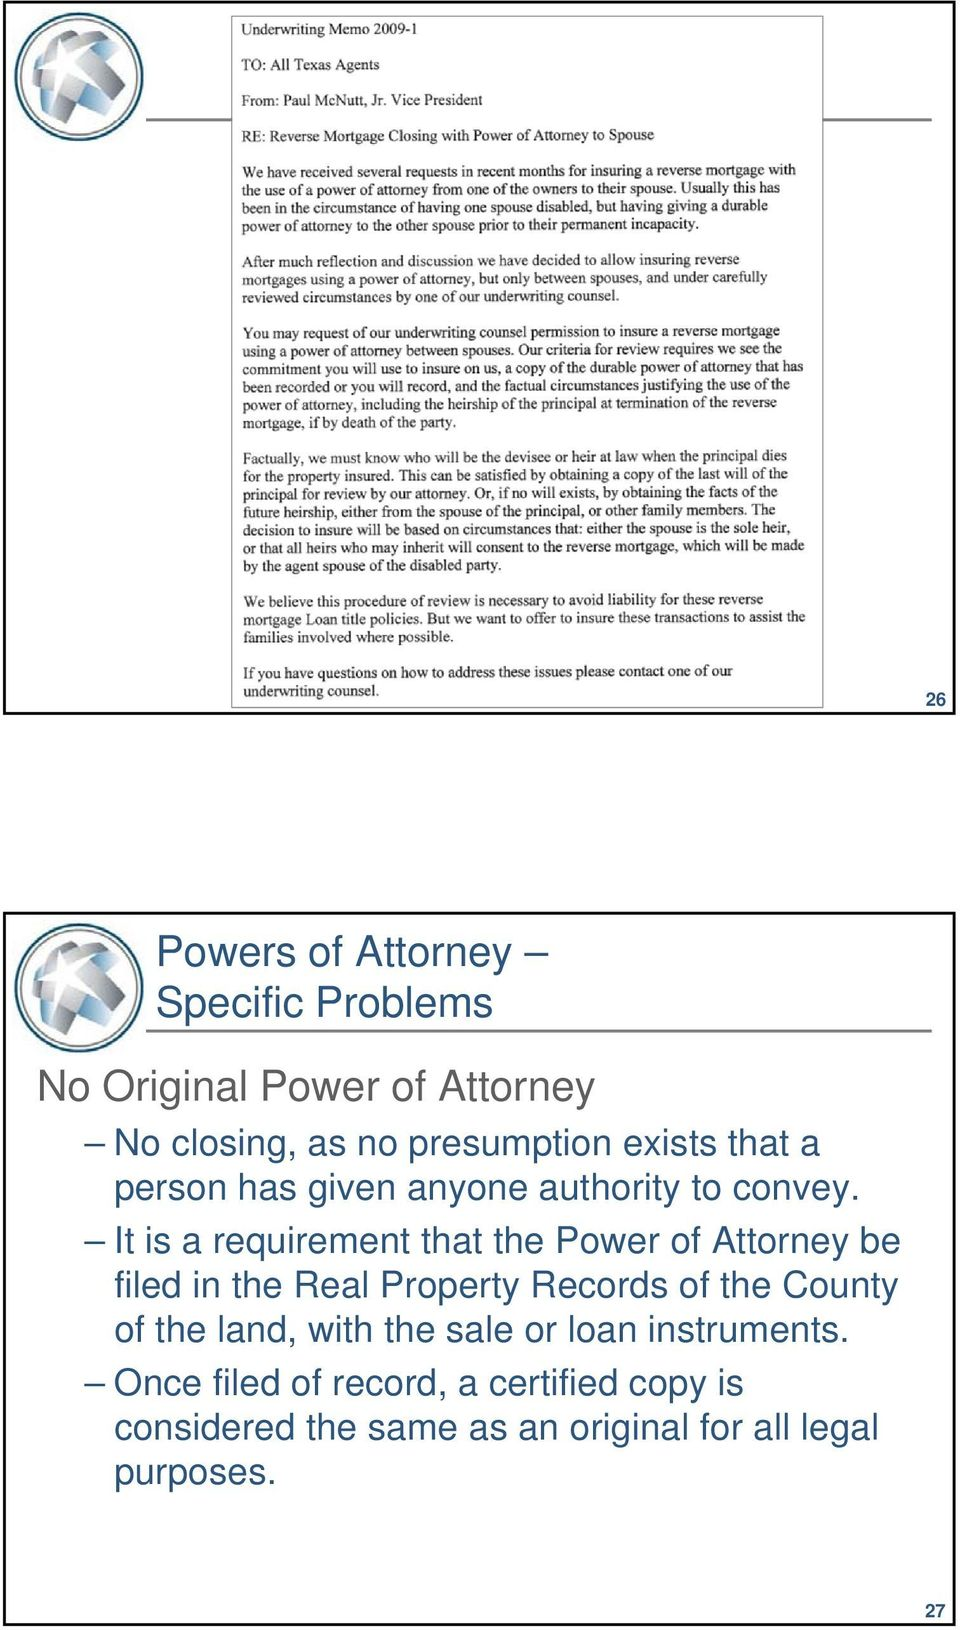 It is a requirement that the Power of Attorney be filed in the Real Property Records of the County of